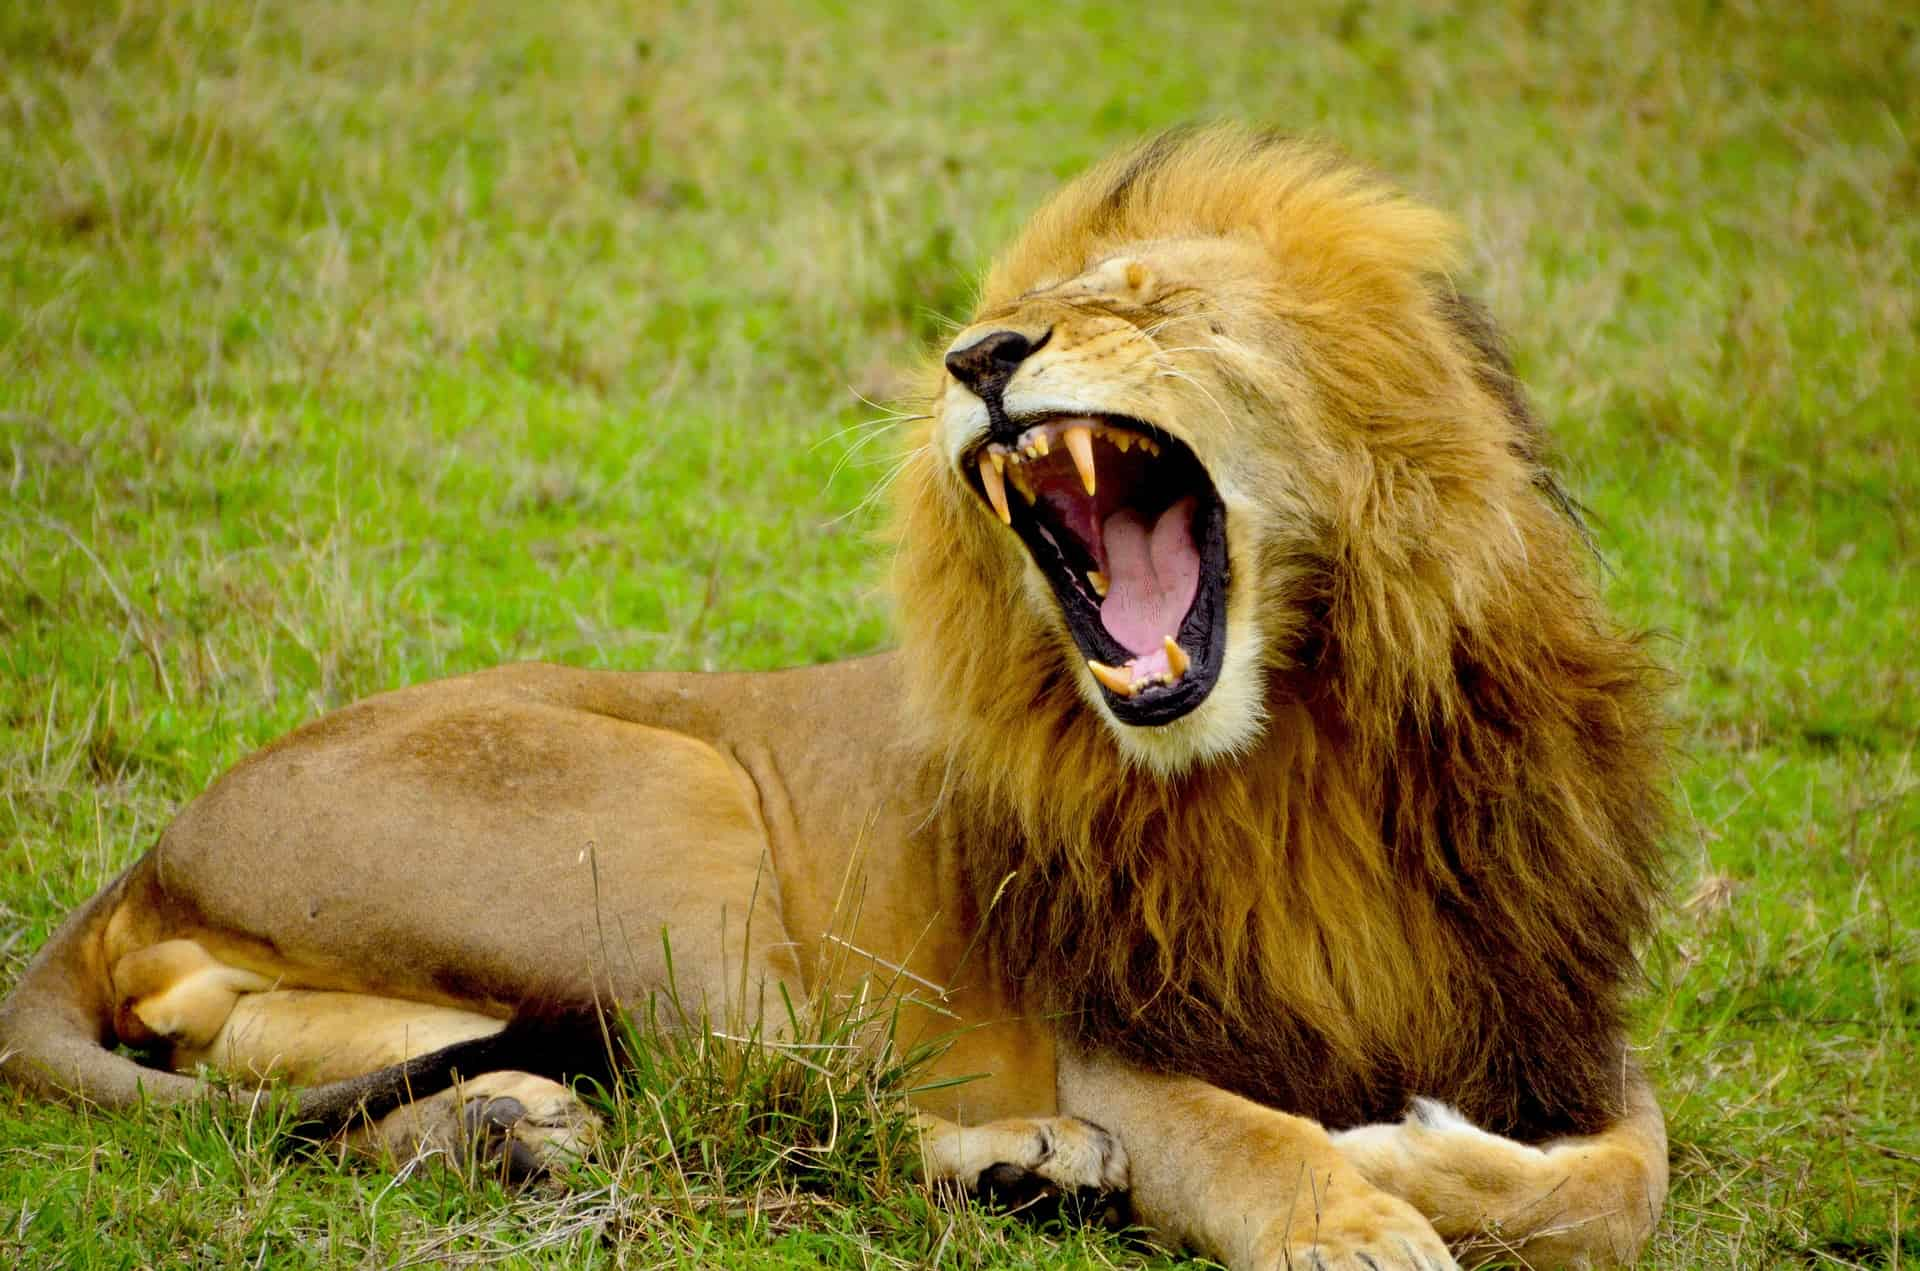 Every lion has a unique roar that can be tracked using AI